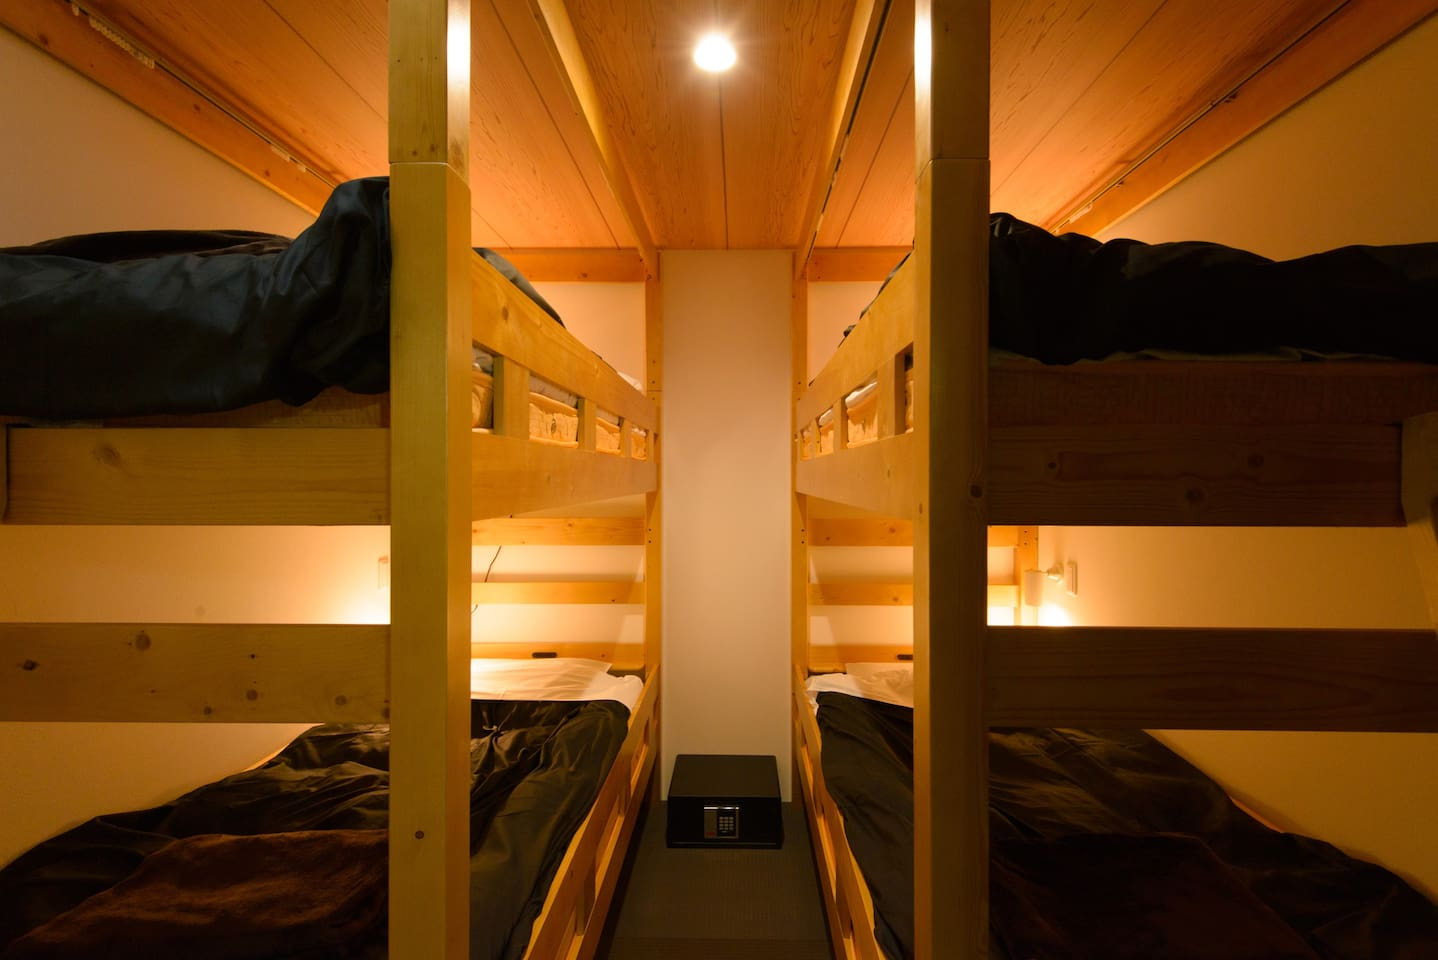 Compact 2 bunk bed. Max 4 people